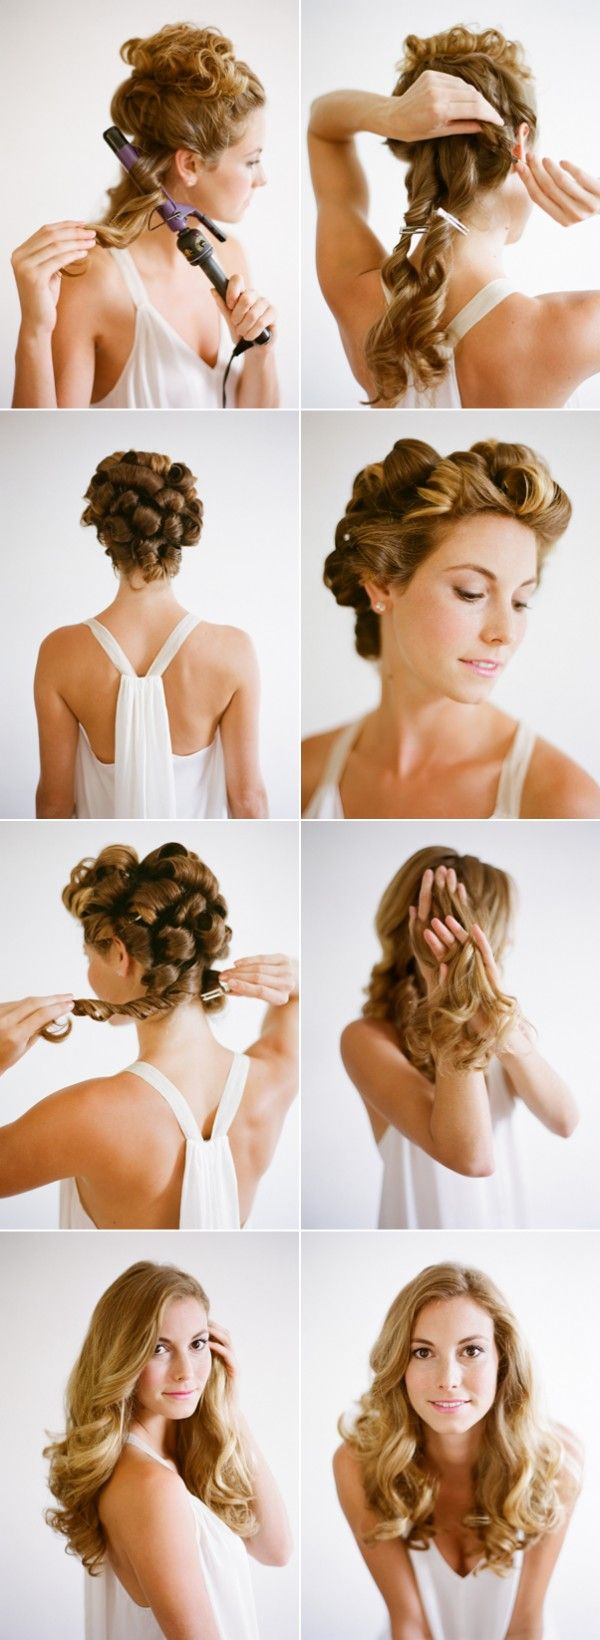 WEDDING HAIRSTYLES FOR LONG HAIR TUTORIAL